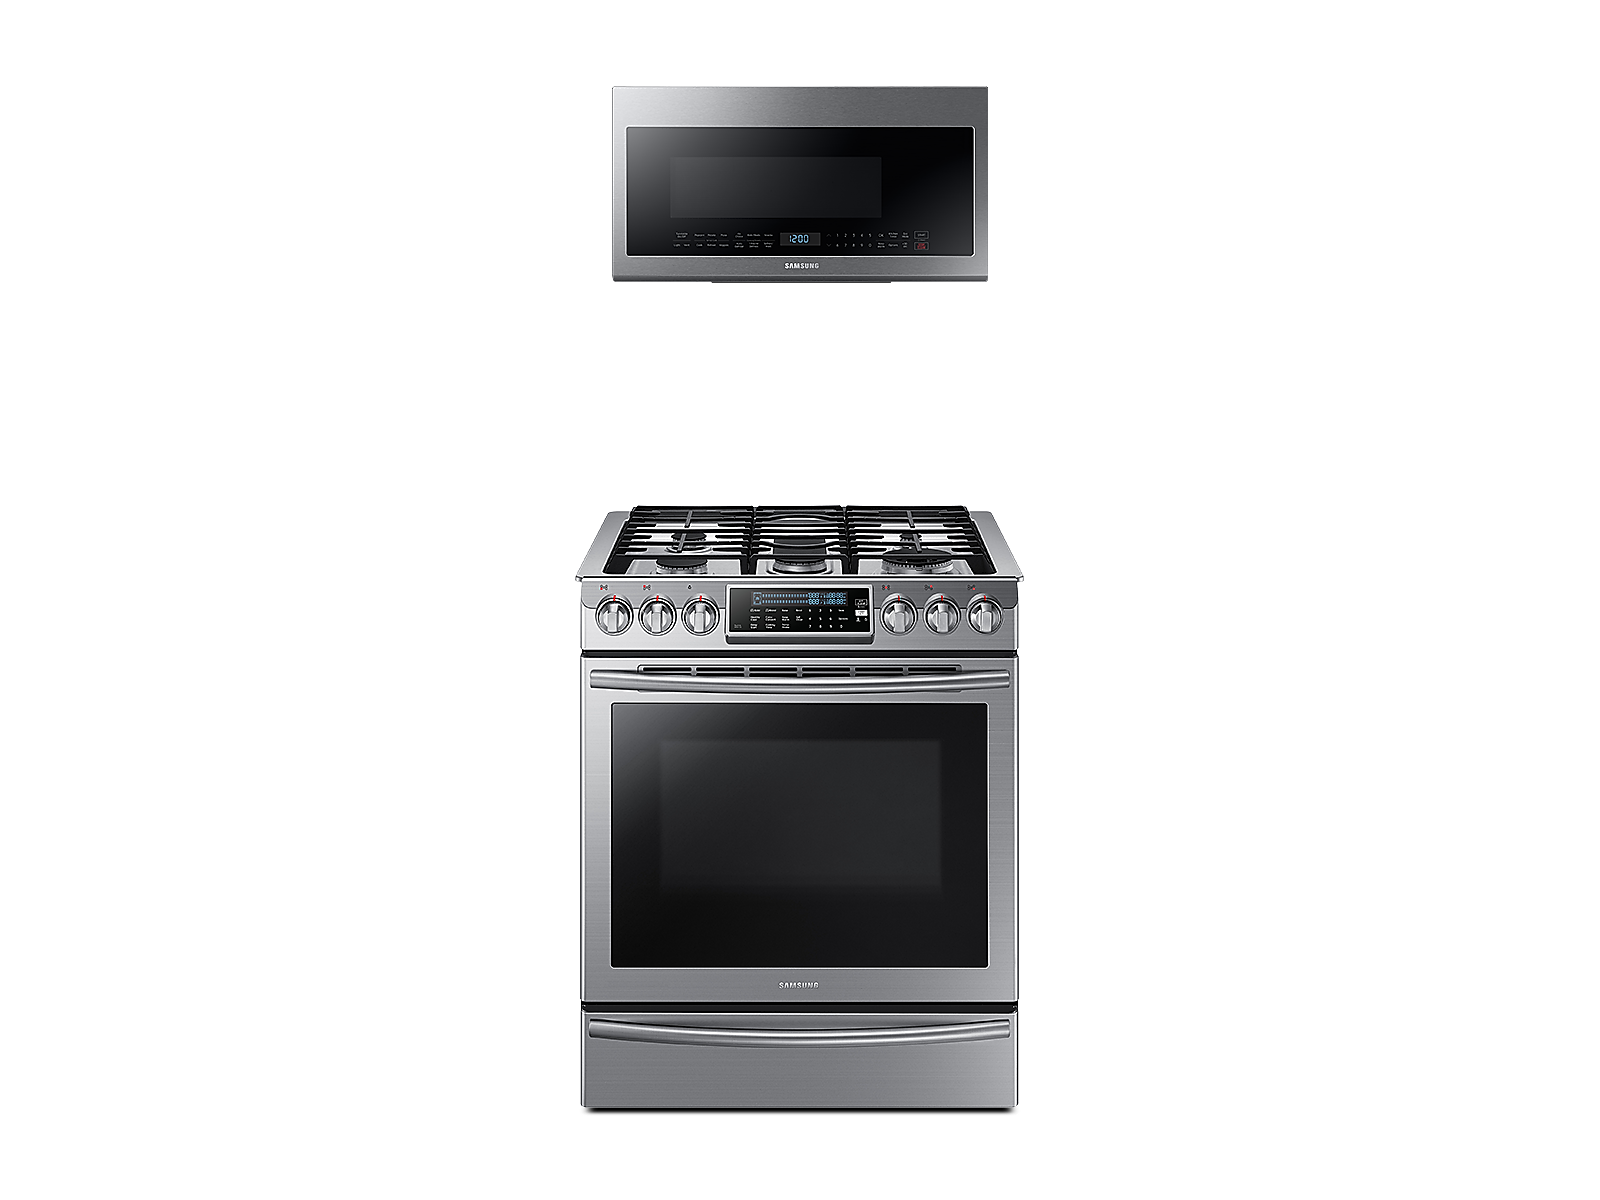 Samsung coupon: Samsung Slide-In Gas Range with True Convection + Over-the-Range Microwave in Stainless Steel(BNDL-1580226174992)